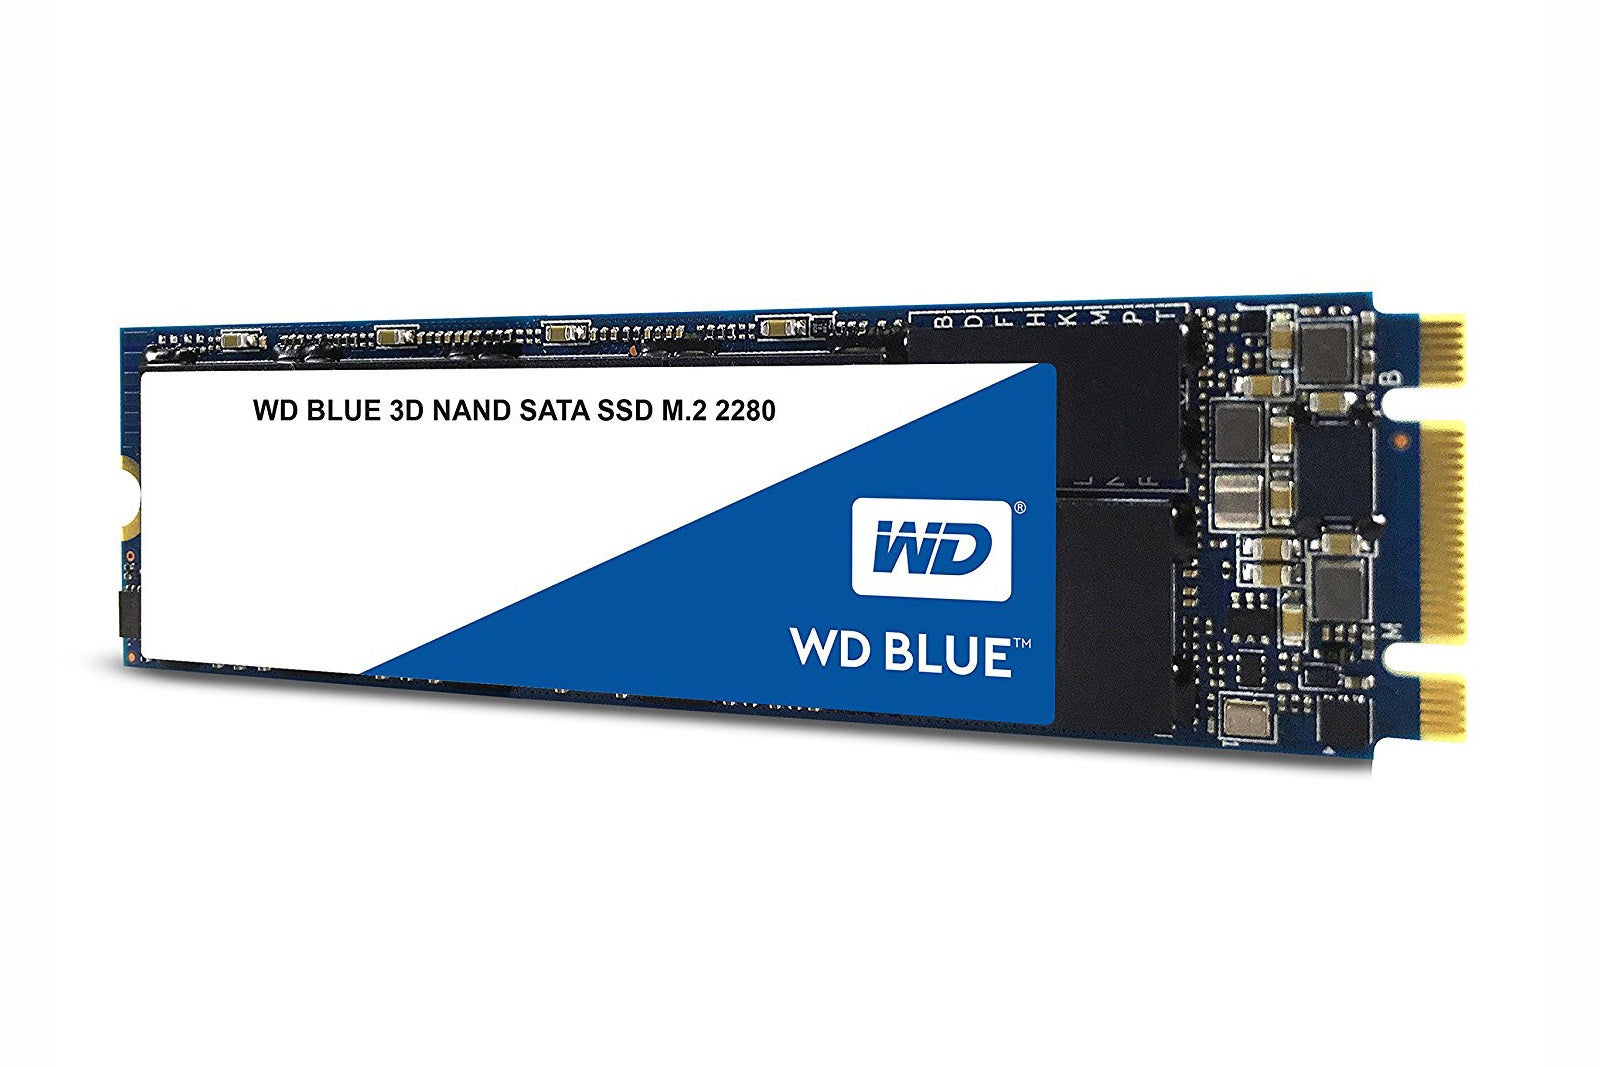 Wd Blue 3d Nand Sata Ssd Review One Of The Fastest Tlc Drives You Hardisk Hdd Internal Pc 320gb New Can Buy Pcworld